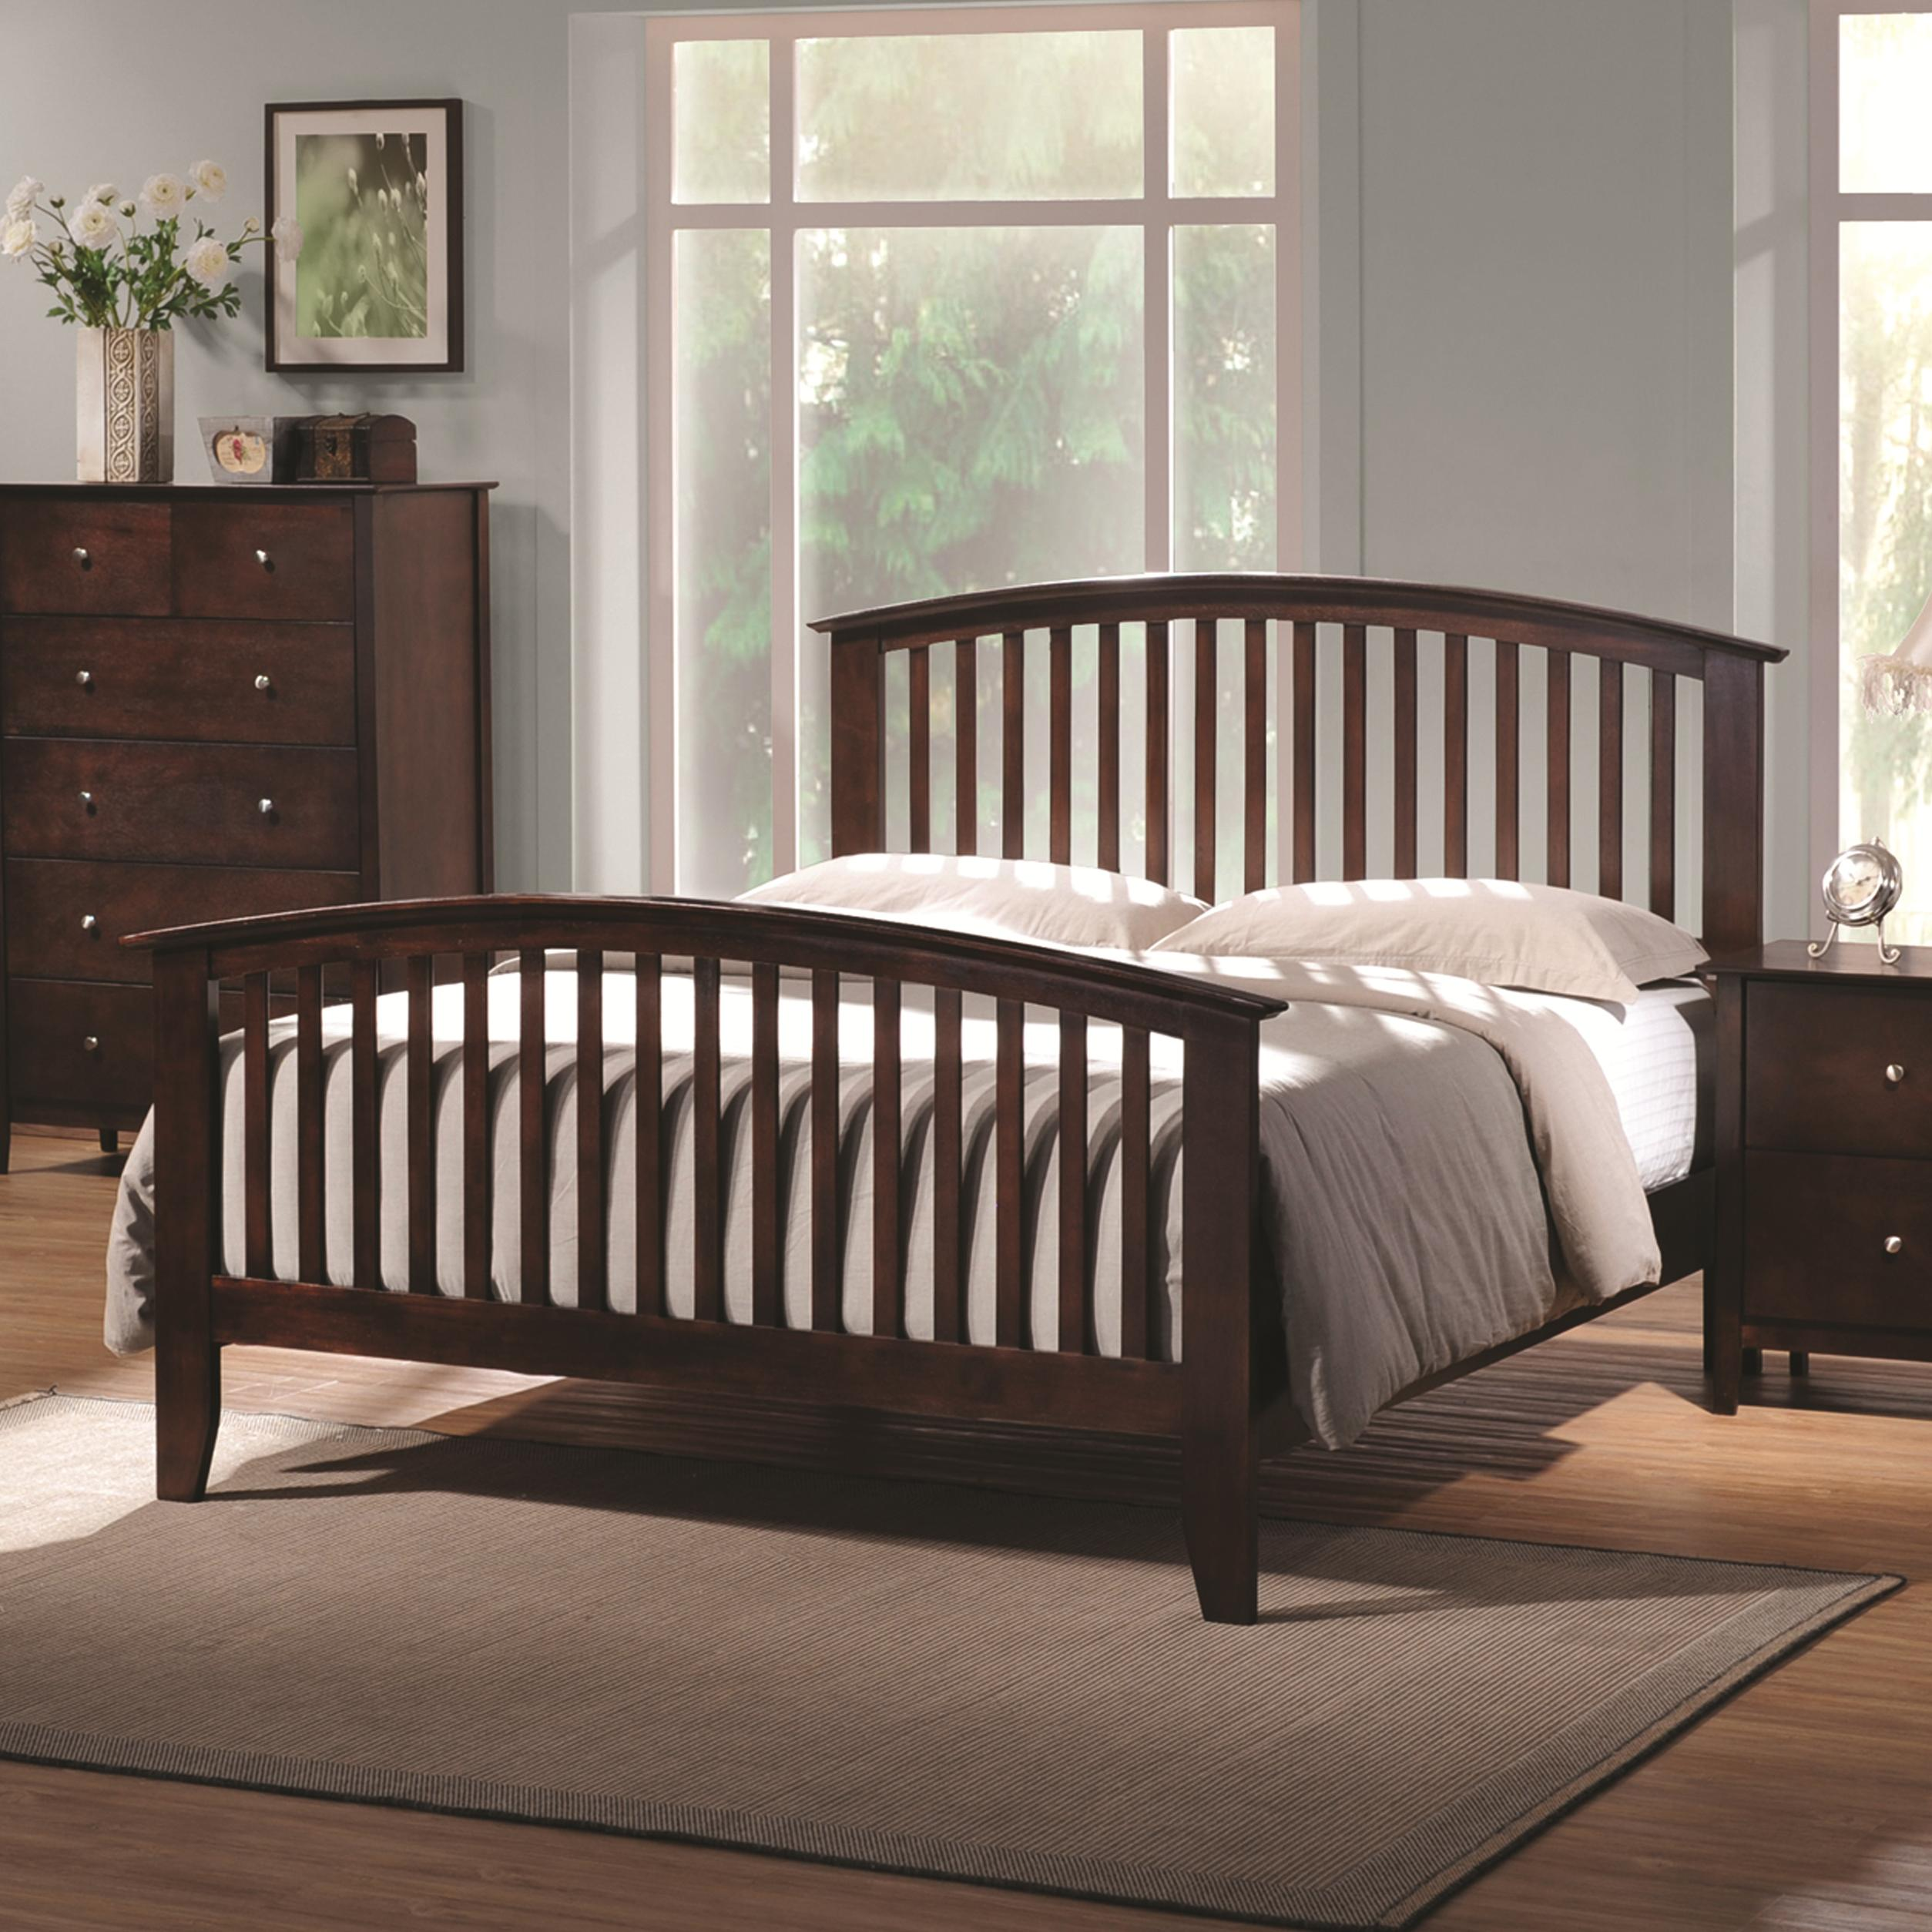 Tia Queen Headboard & Footboard Bed by Coaster at Lapeer Furniture & Mattress Center